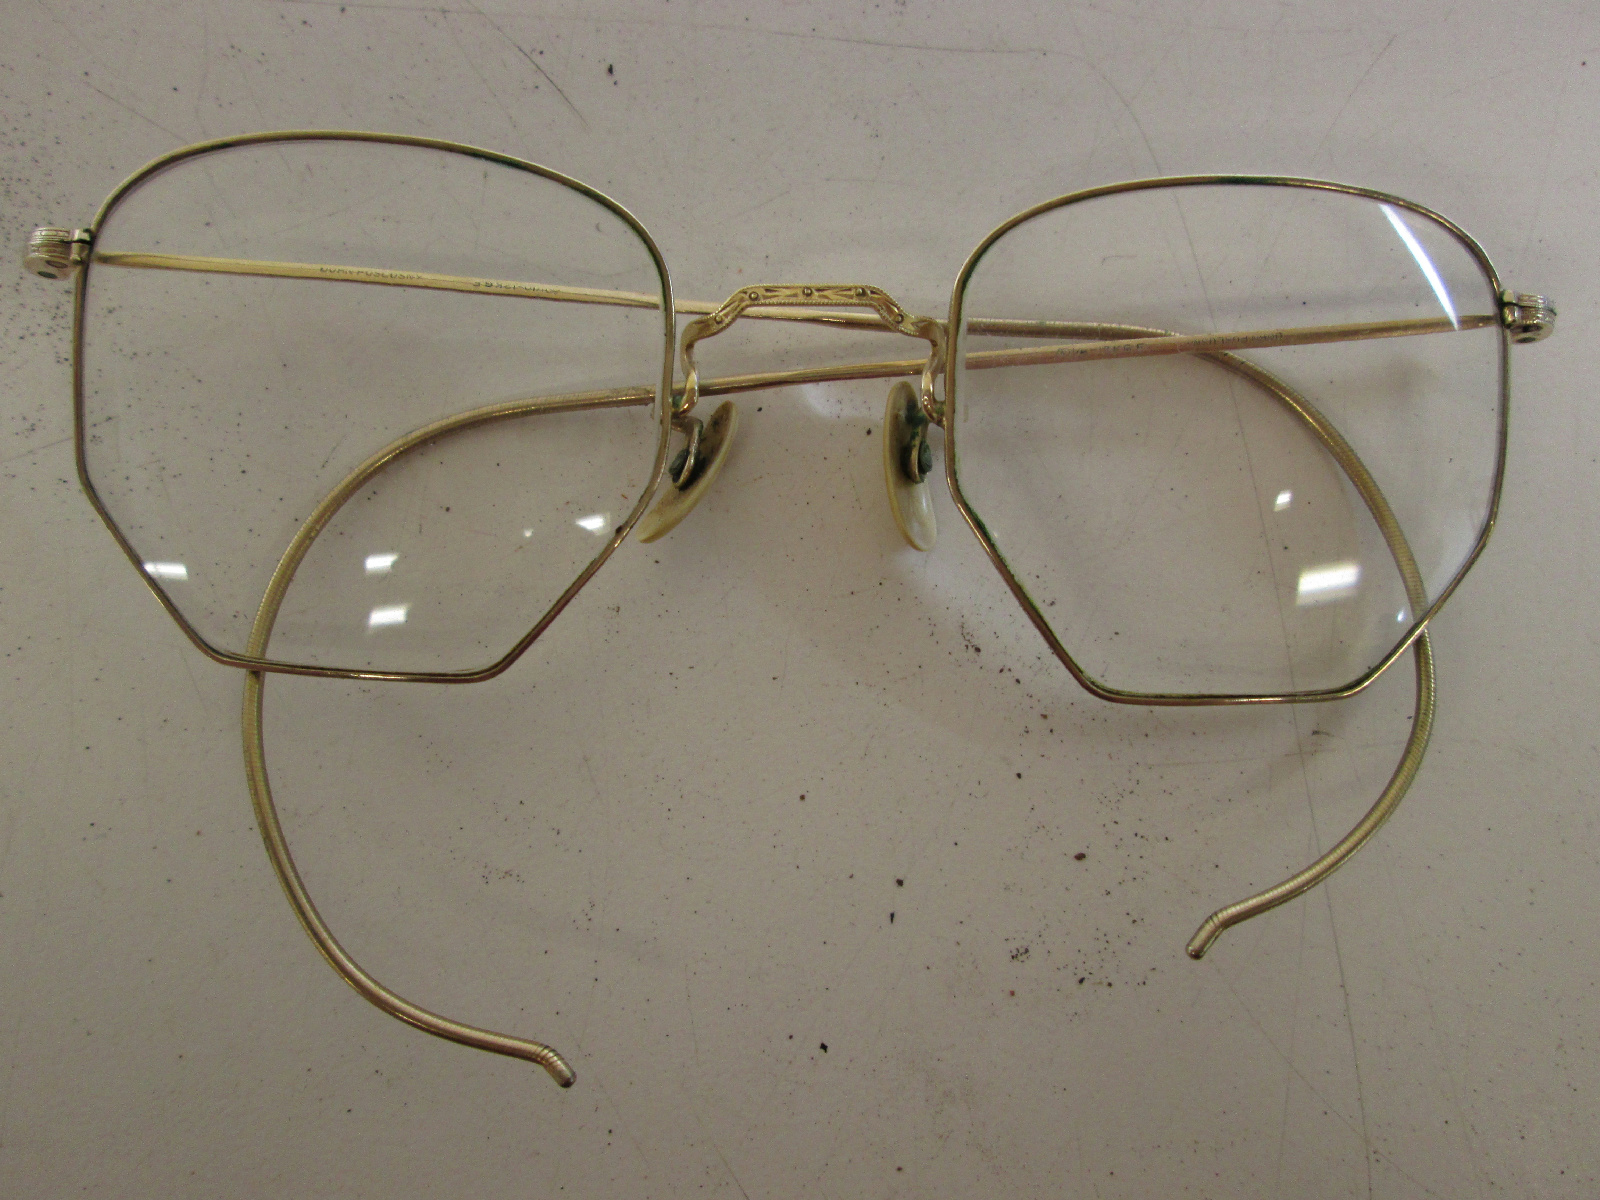 Lot of 2 Antique Gold Filled Eyeglasses Wire Rim Reading ...